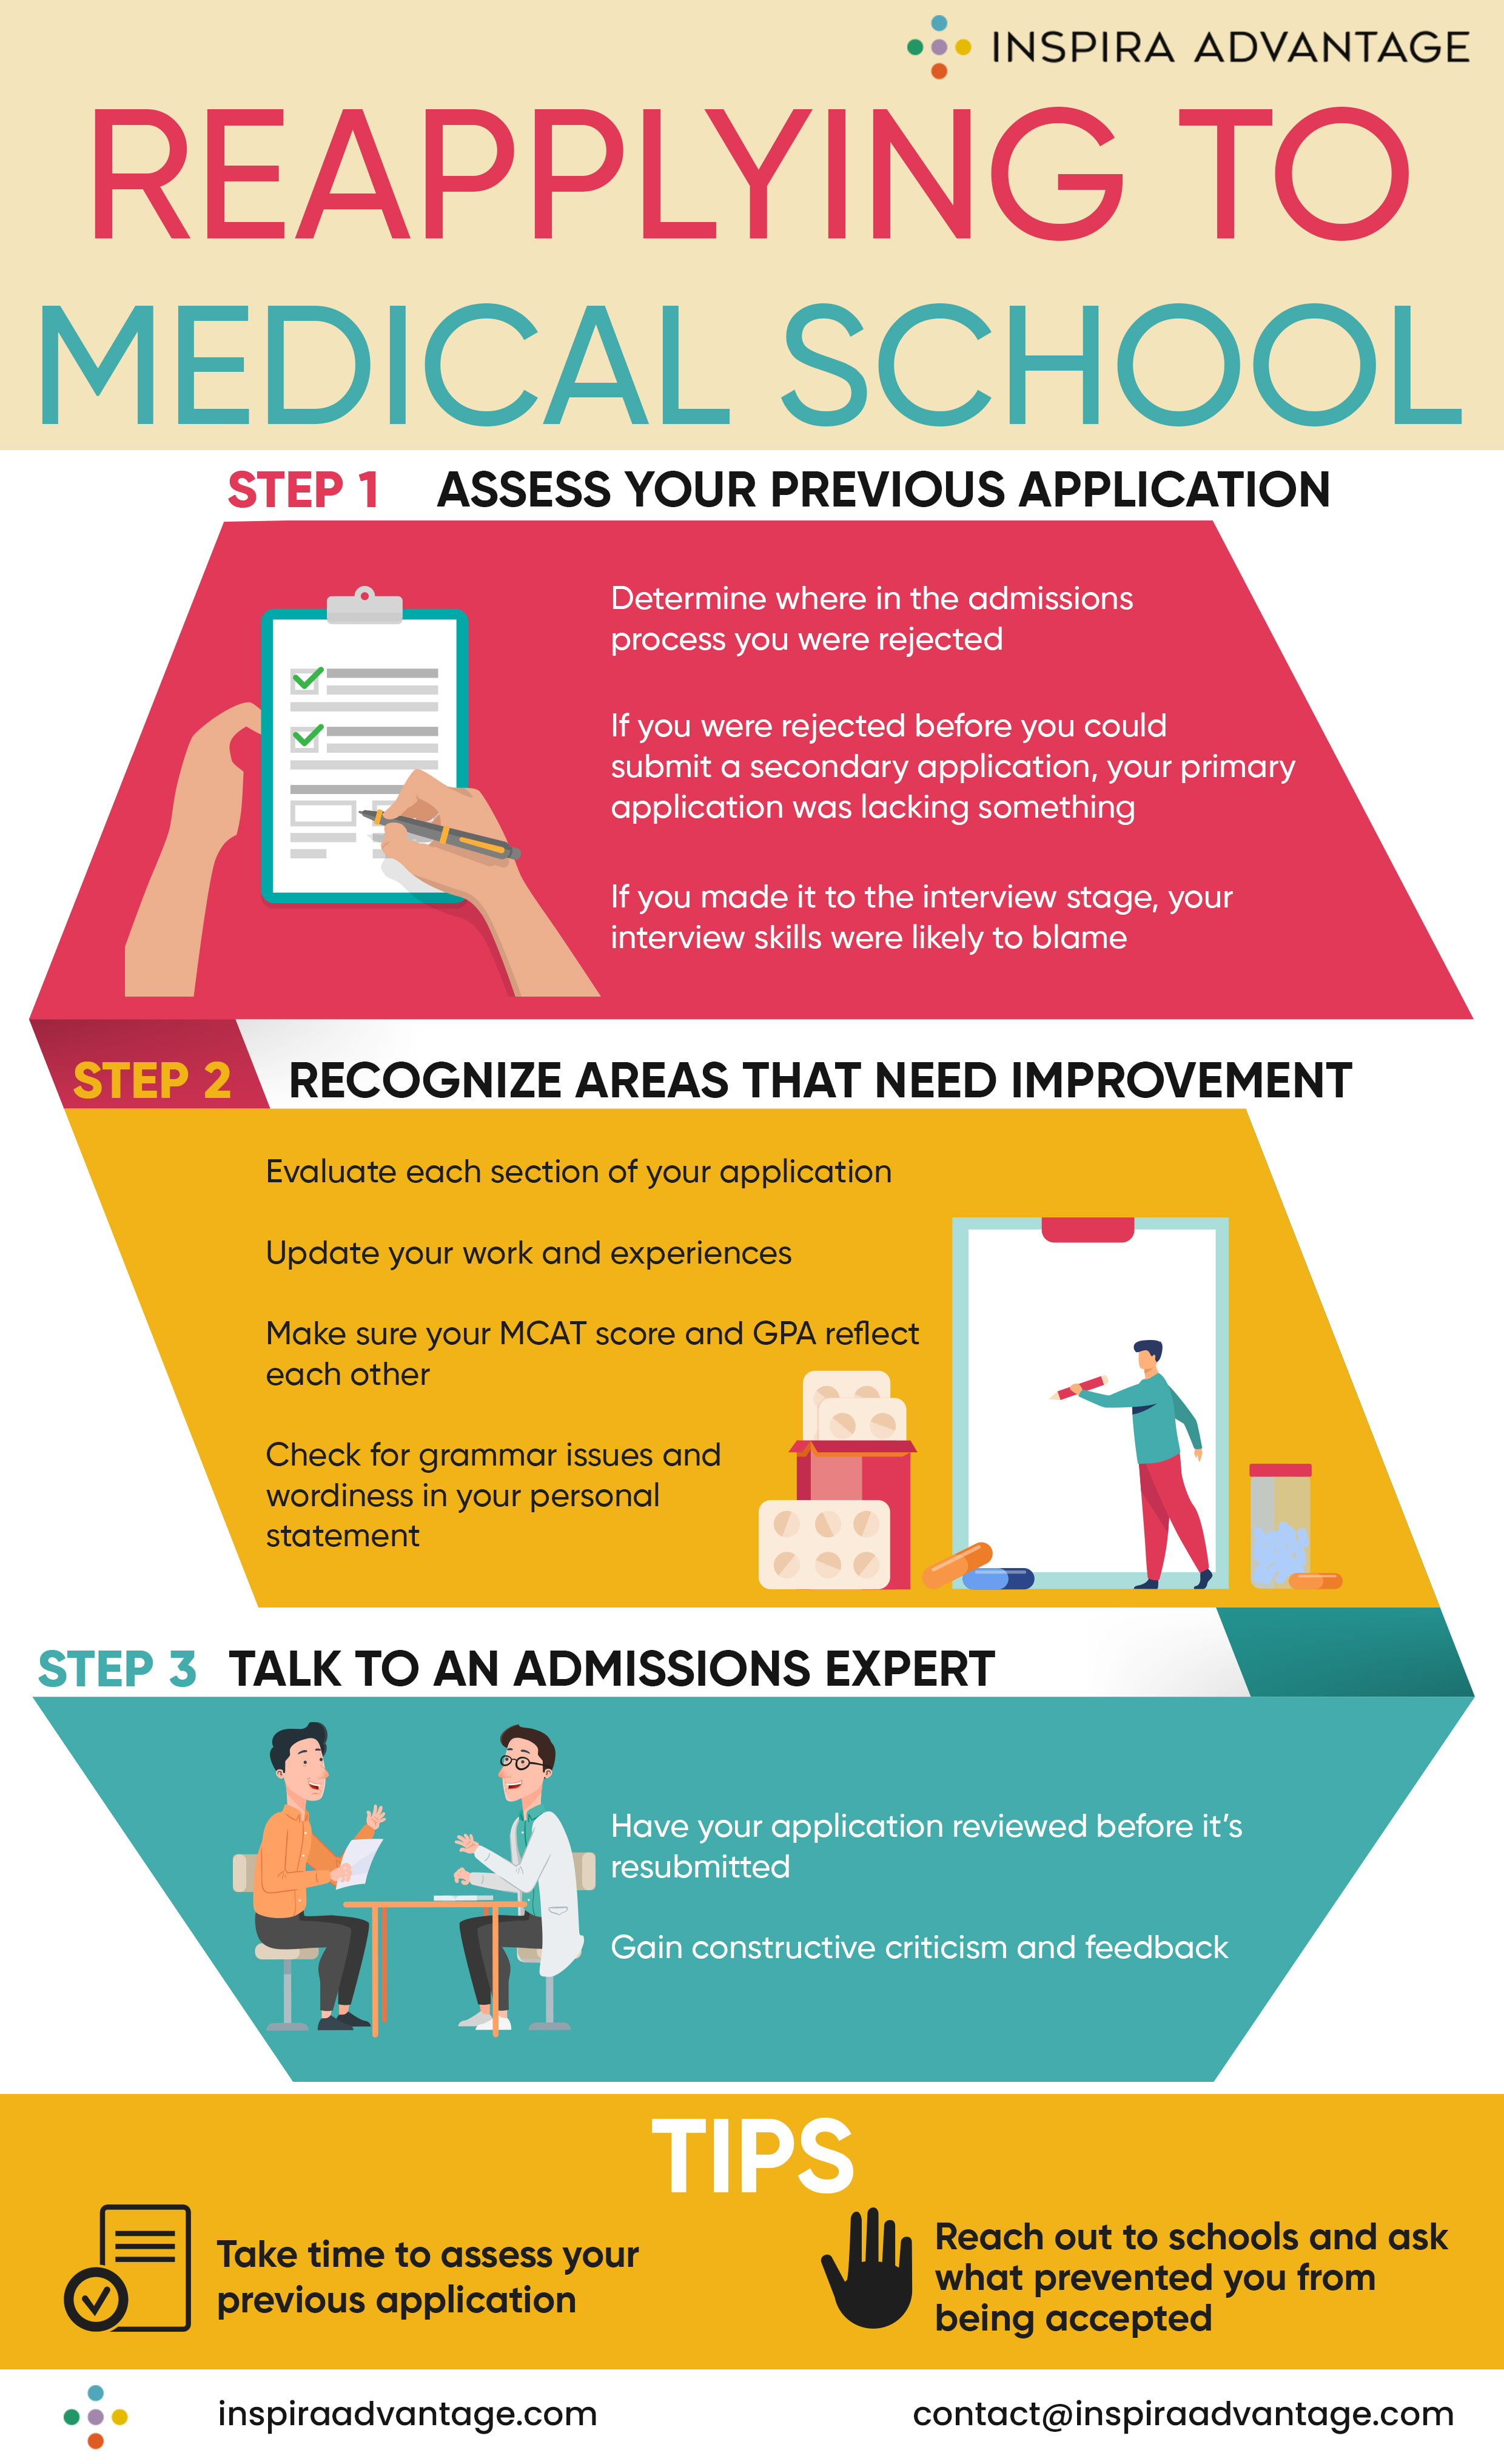 Guide on reapplying to medical school